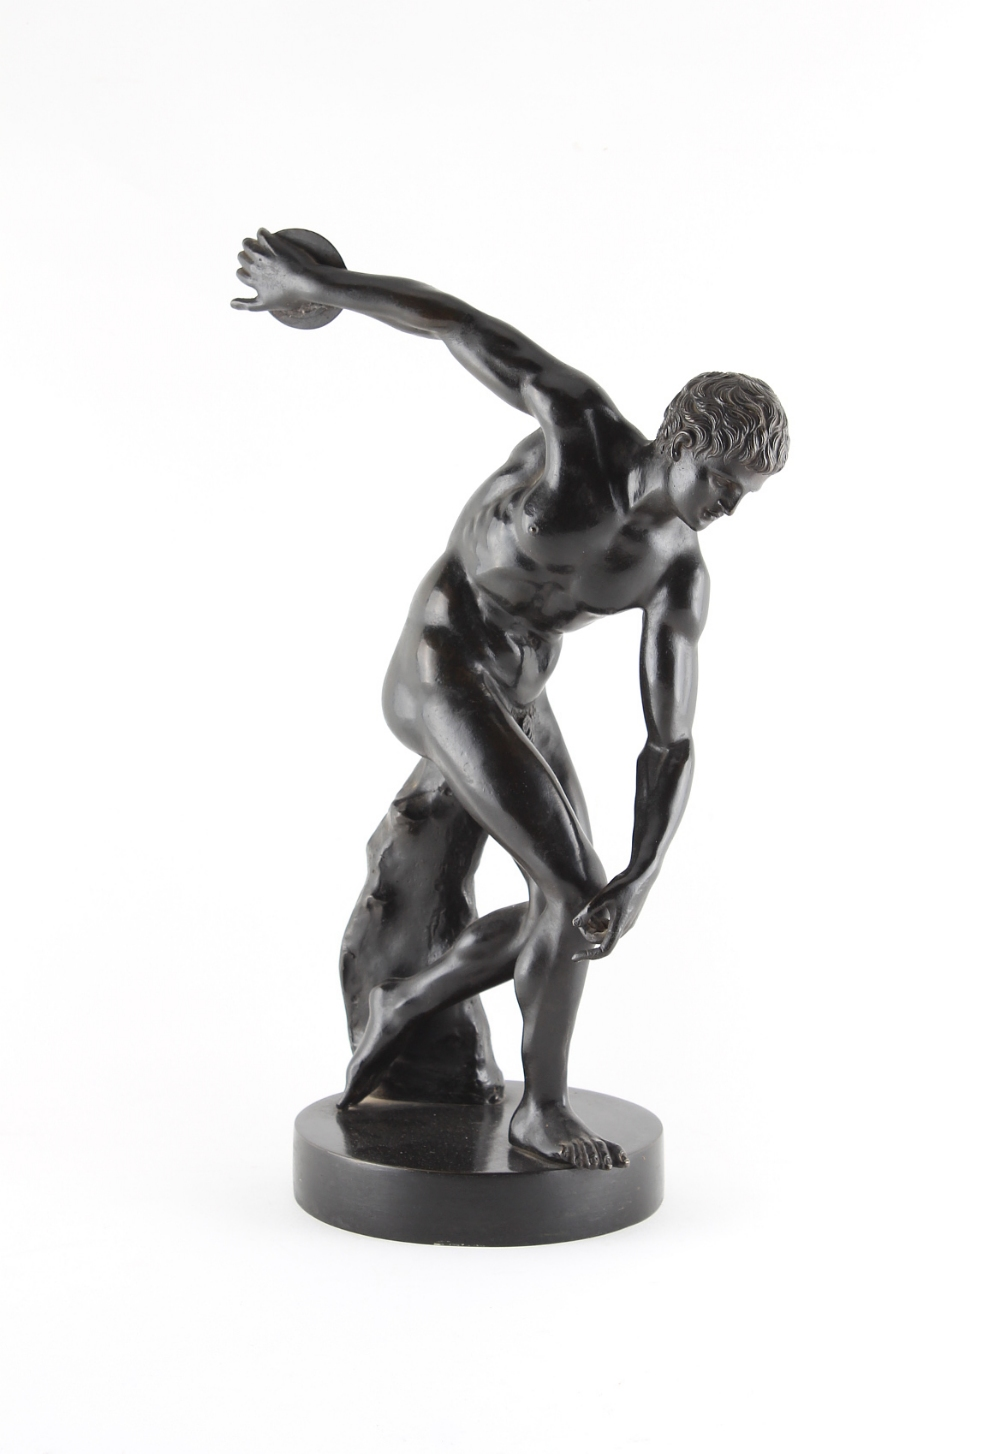 Property of a lady - a well cast 19th century patinated bronze figure of a discus thrower, after the